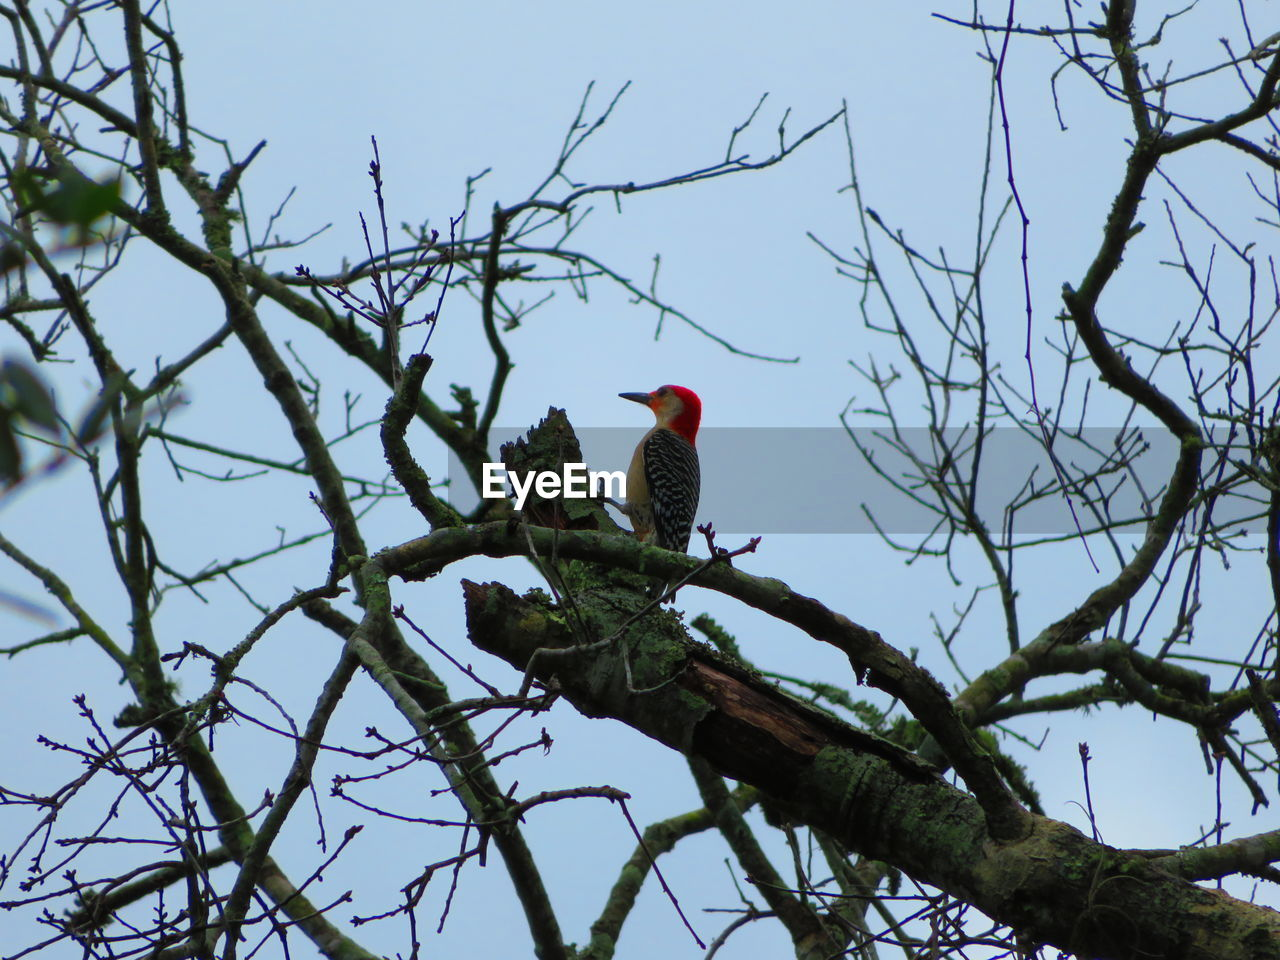 bird, tree, vertebrate, perching, animal themes, animals in the wild, branch, animal, low angle view, animal wildlife, one animal, plant, sky, nature, bare tree, day, no people, clear sky, outdoors, beauty in nature